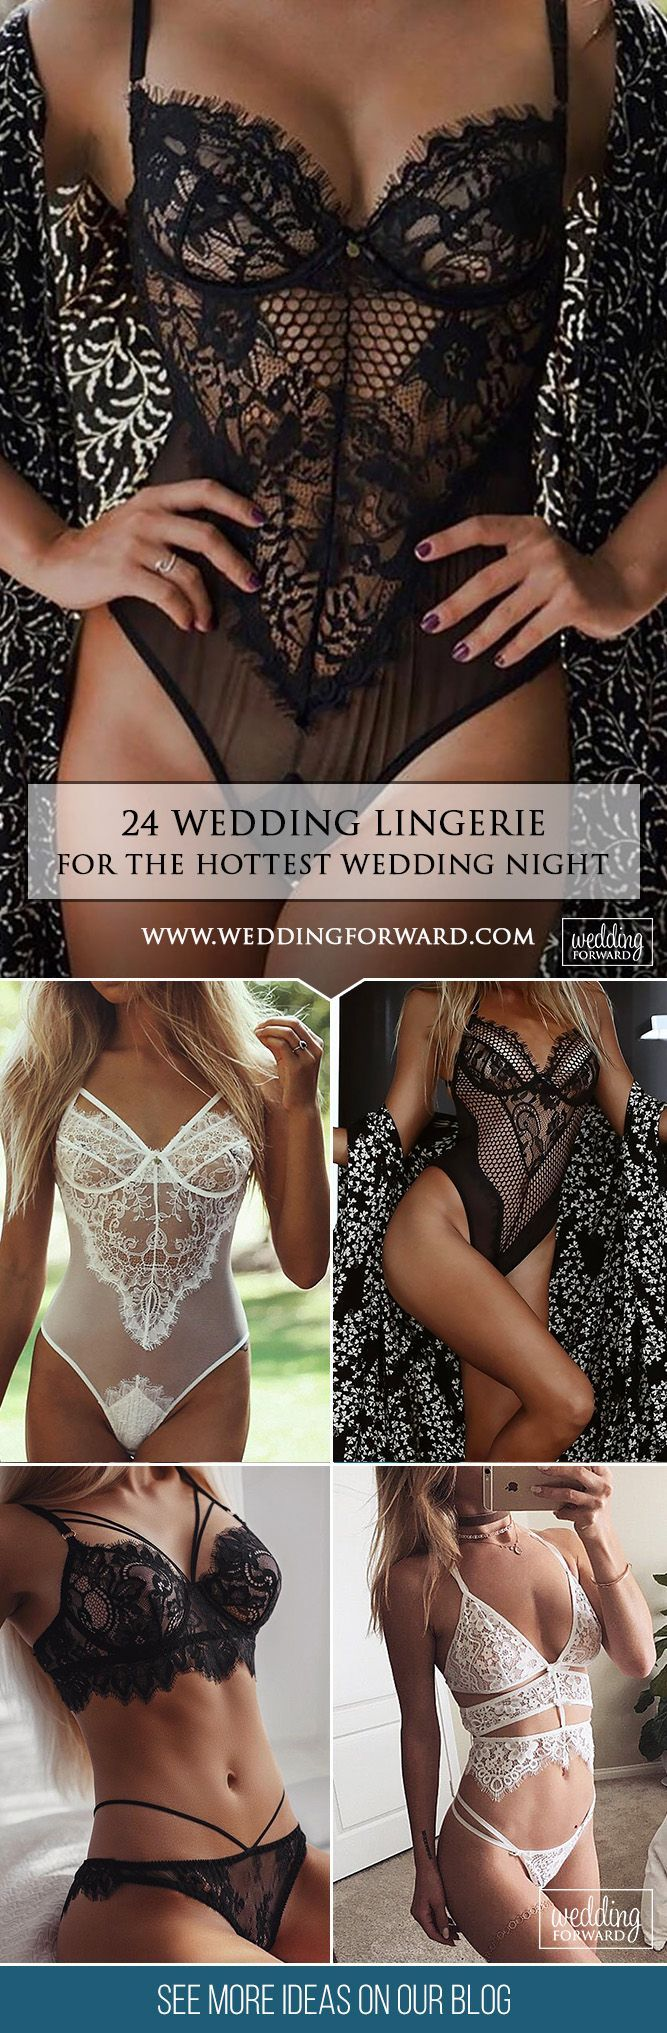 24 Breathtaking Wedding Lingerie ❤️   Make your wedding day and wedding-night perfect with a stunning wedding lingerie from our list below. Show your sexiness to your groom! See more: http://www.weddingforward.com/wedding-lingerie/ #weddings #lingerie #dress